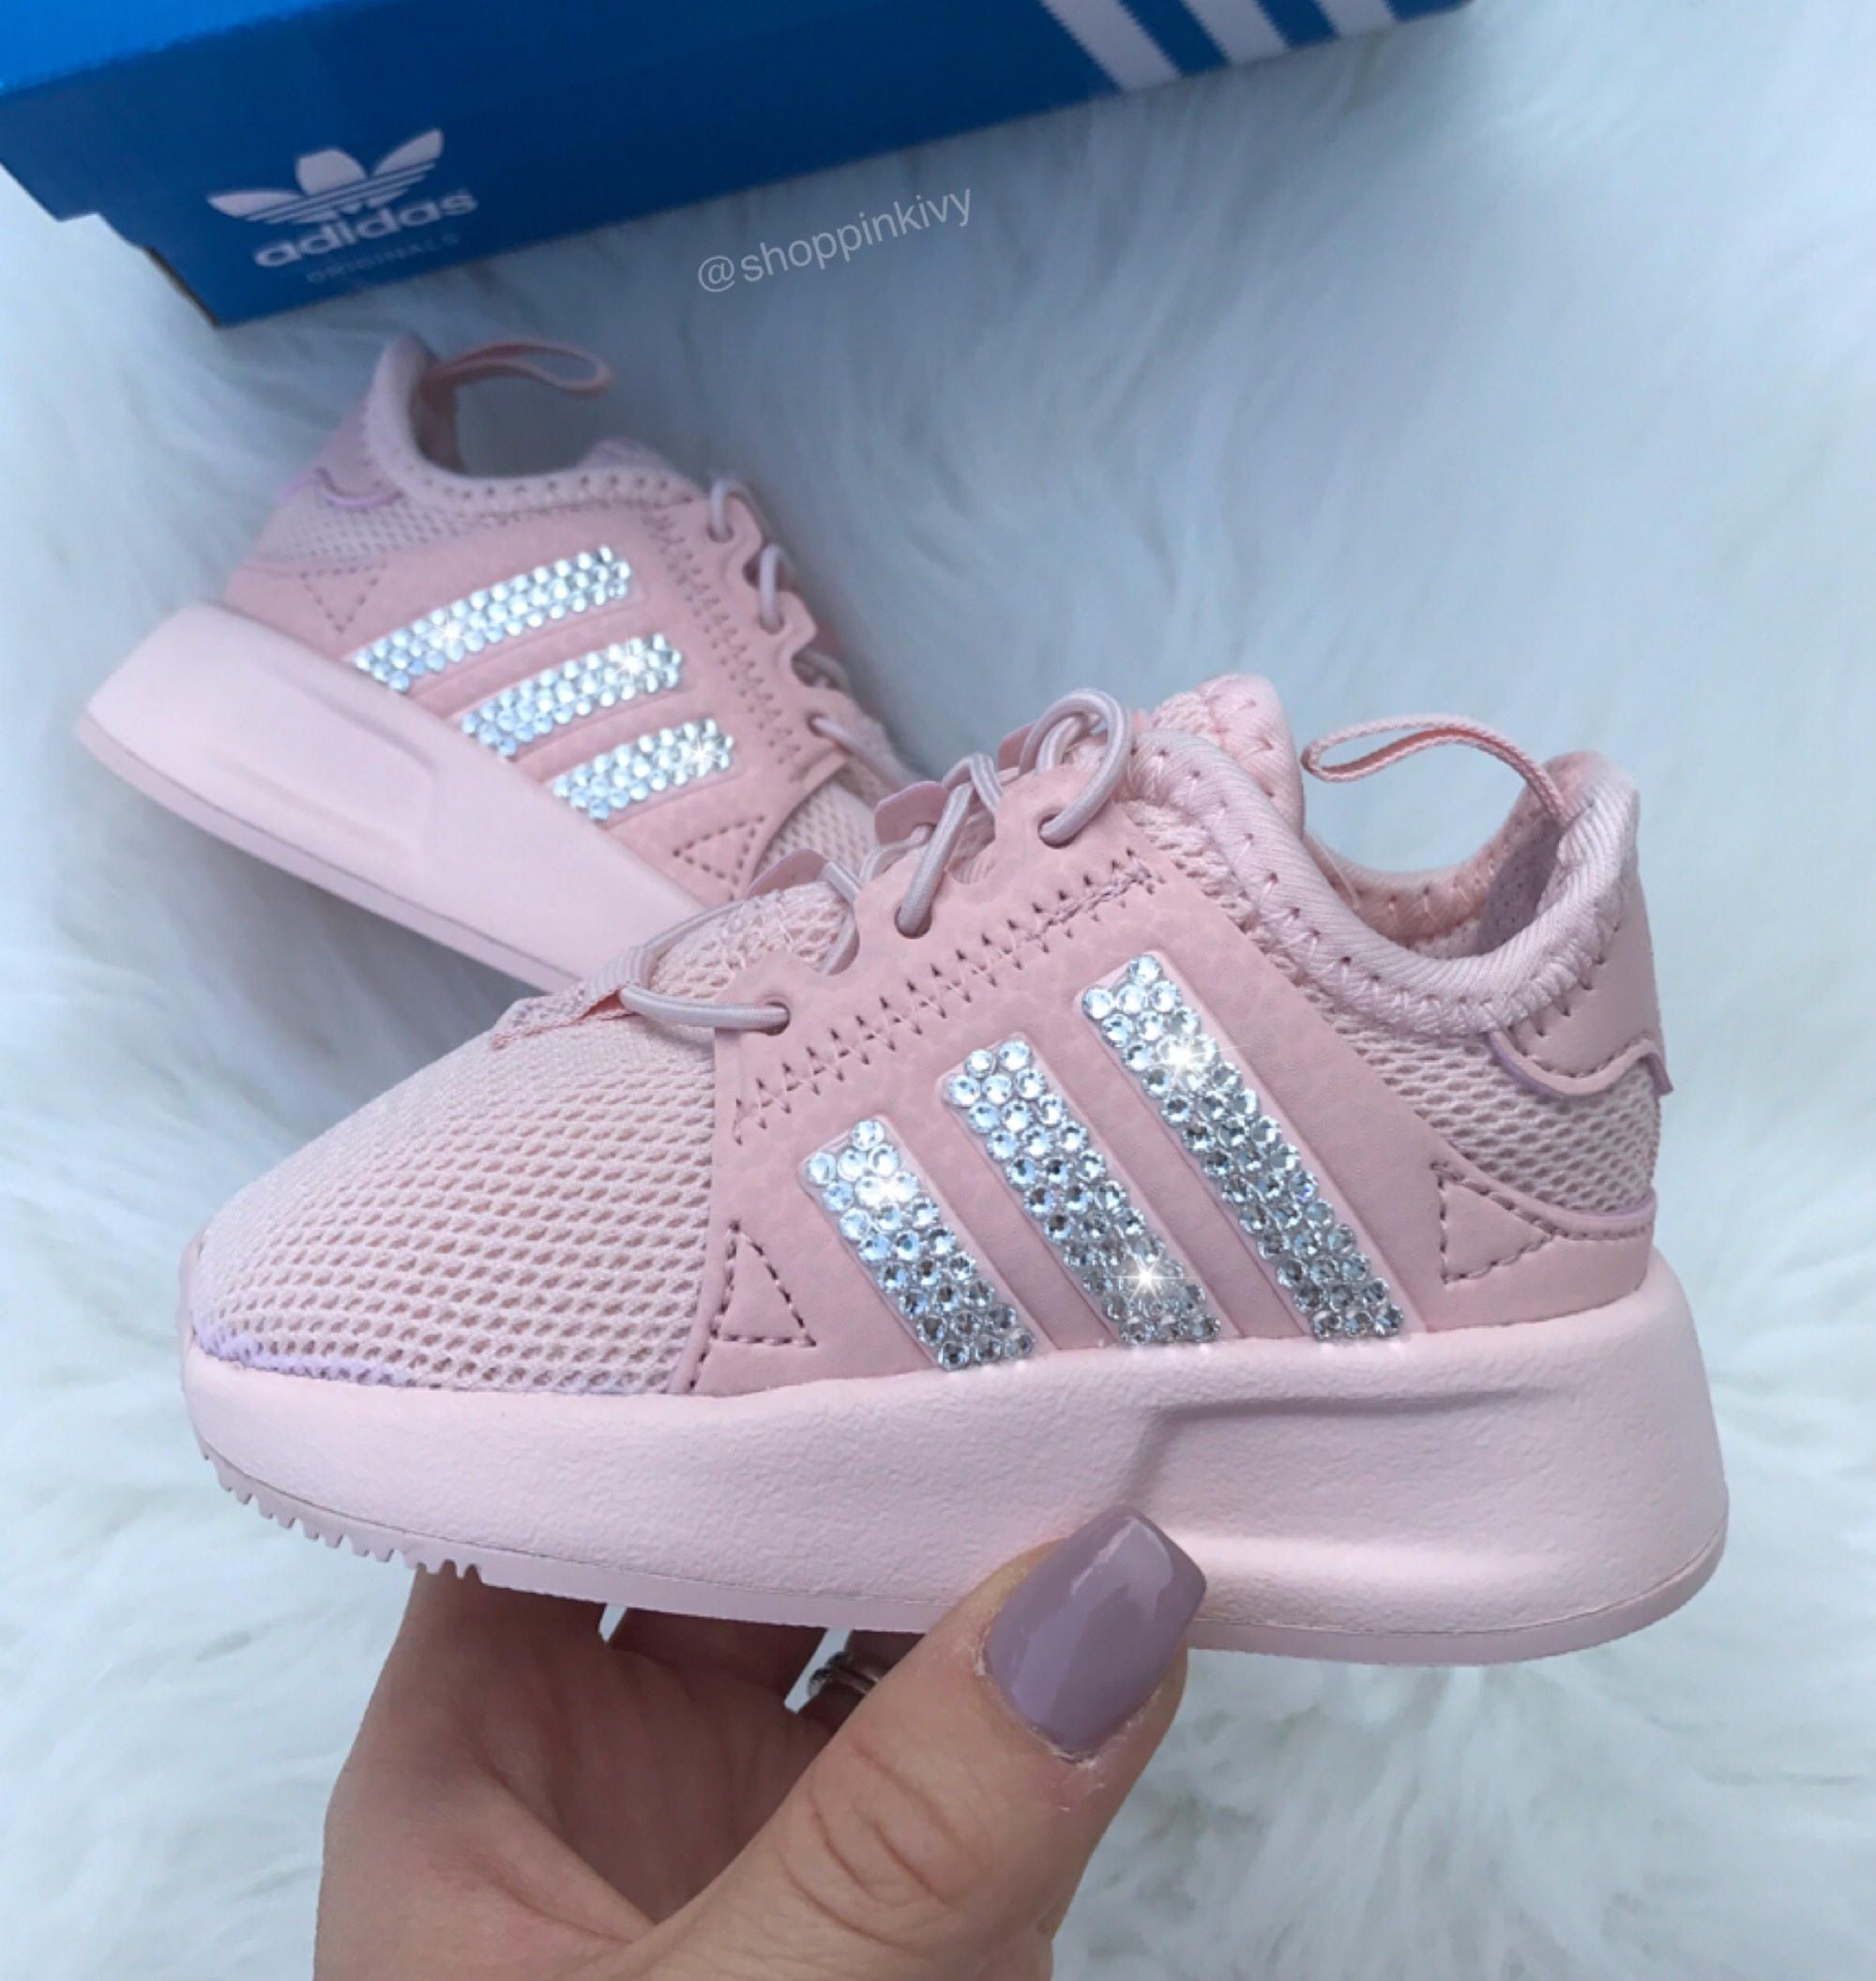 Crystal Adidas NMD sneaker for Kids | Cute baby shoes, Baby girl ...